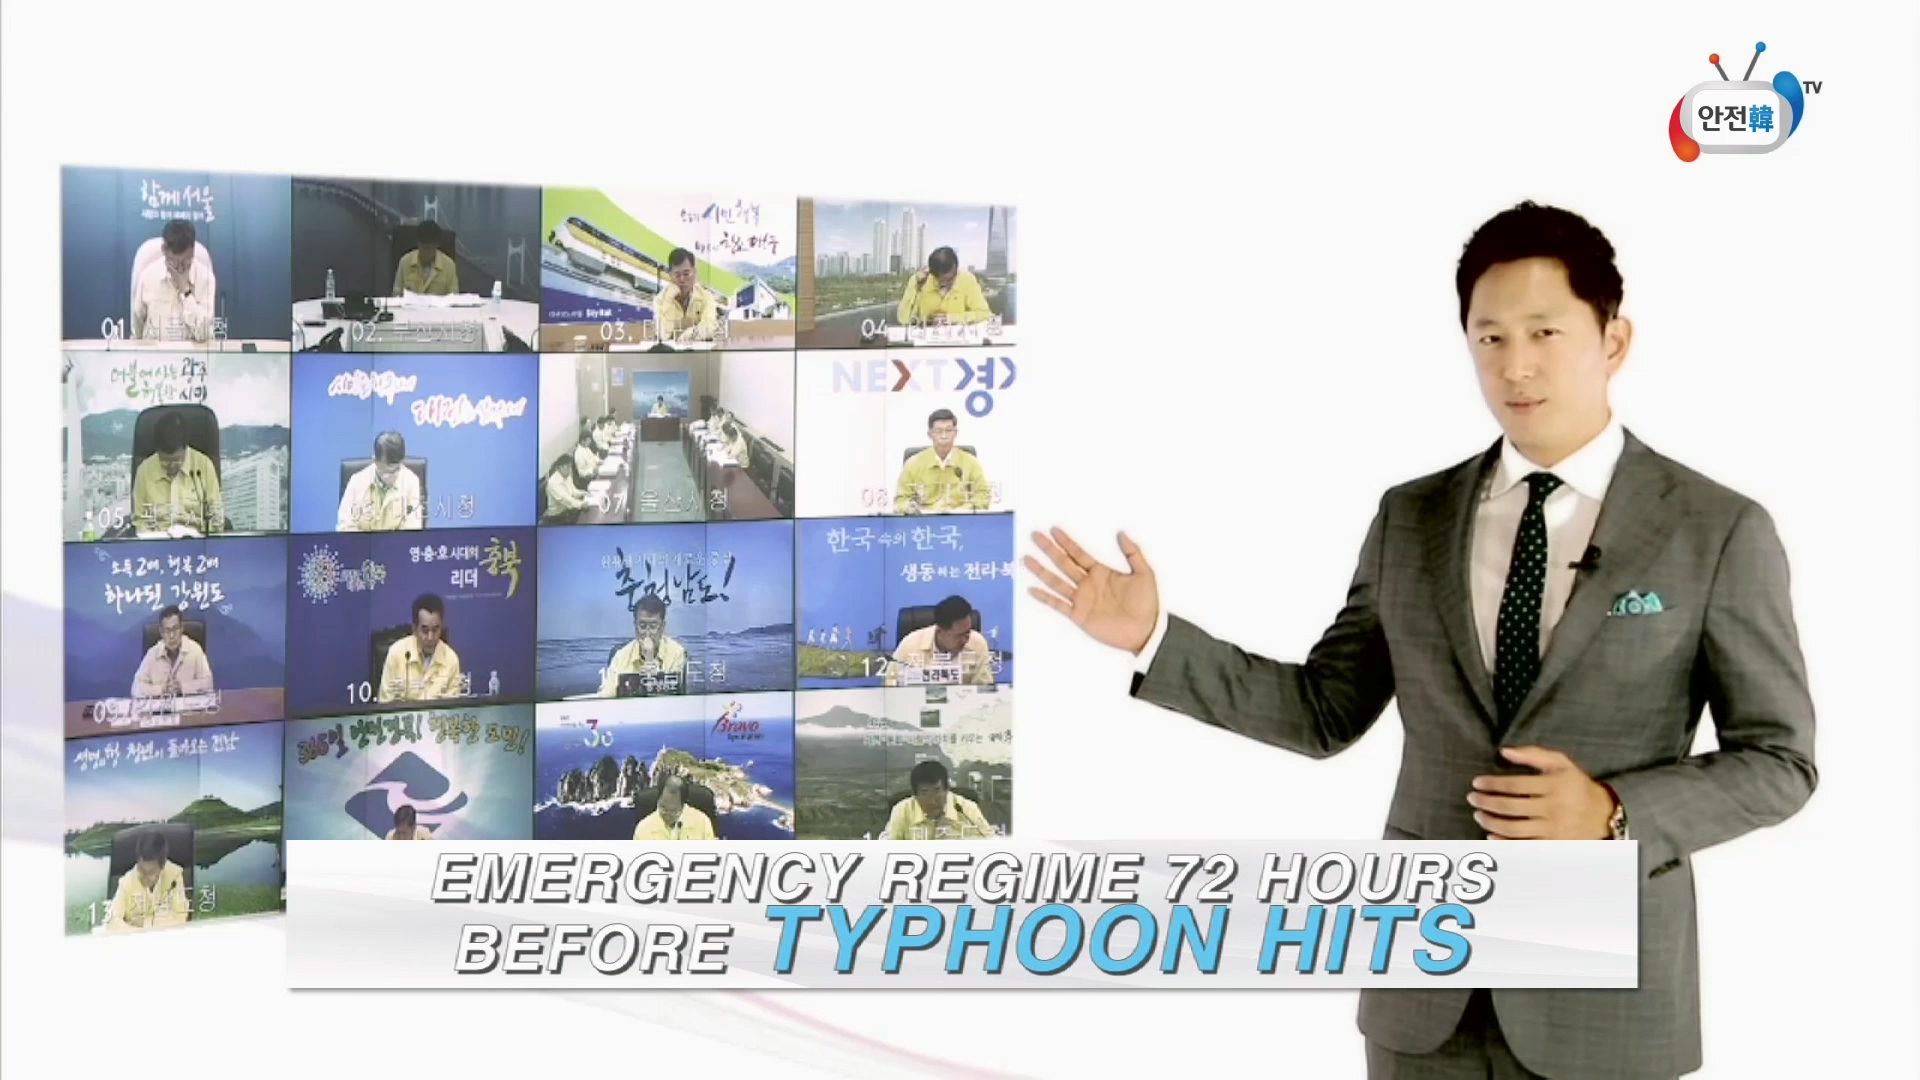 Destructive Typhoons